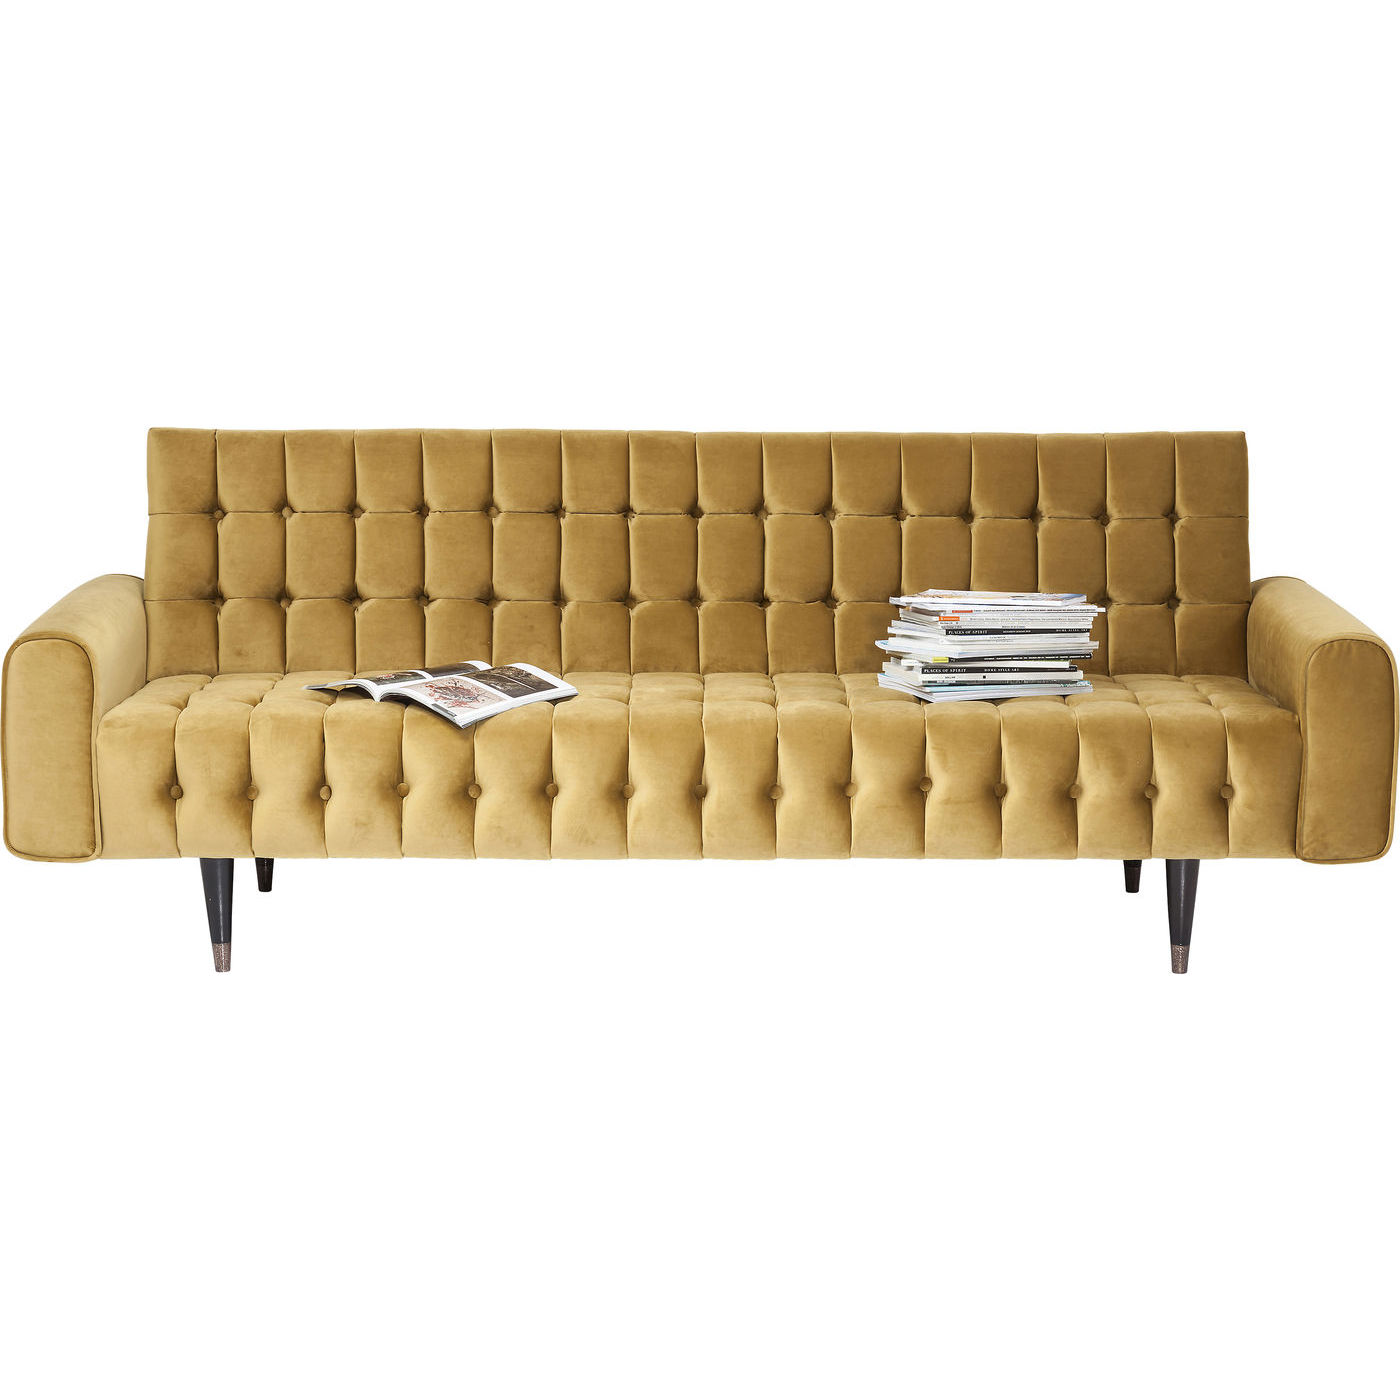 Kare Design Milchbar Honey 3 pers. Sofa thumbnail